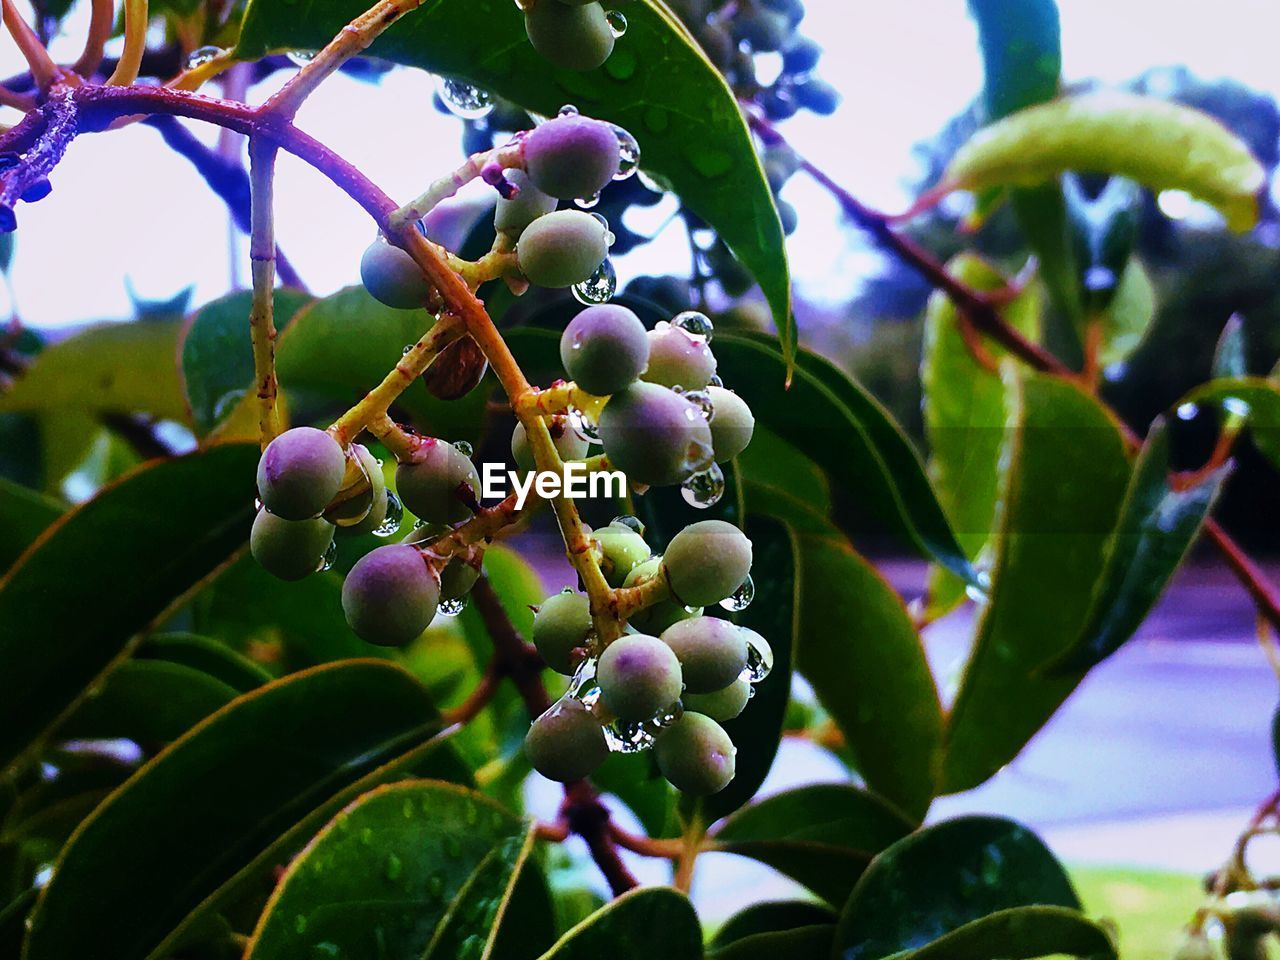 growth, tree, nature, leaf, fruit, plant, food and drink, day, beauty in nature, outdoors, branch, no people, freshness, olive, green color, close-up, low angle view, food, black olive